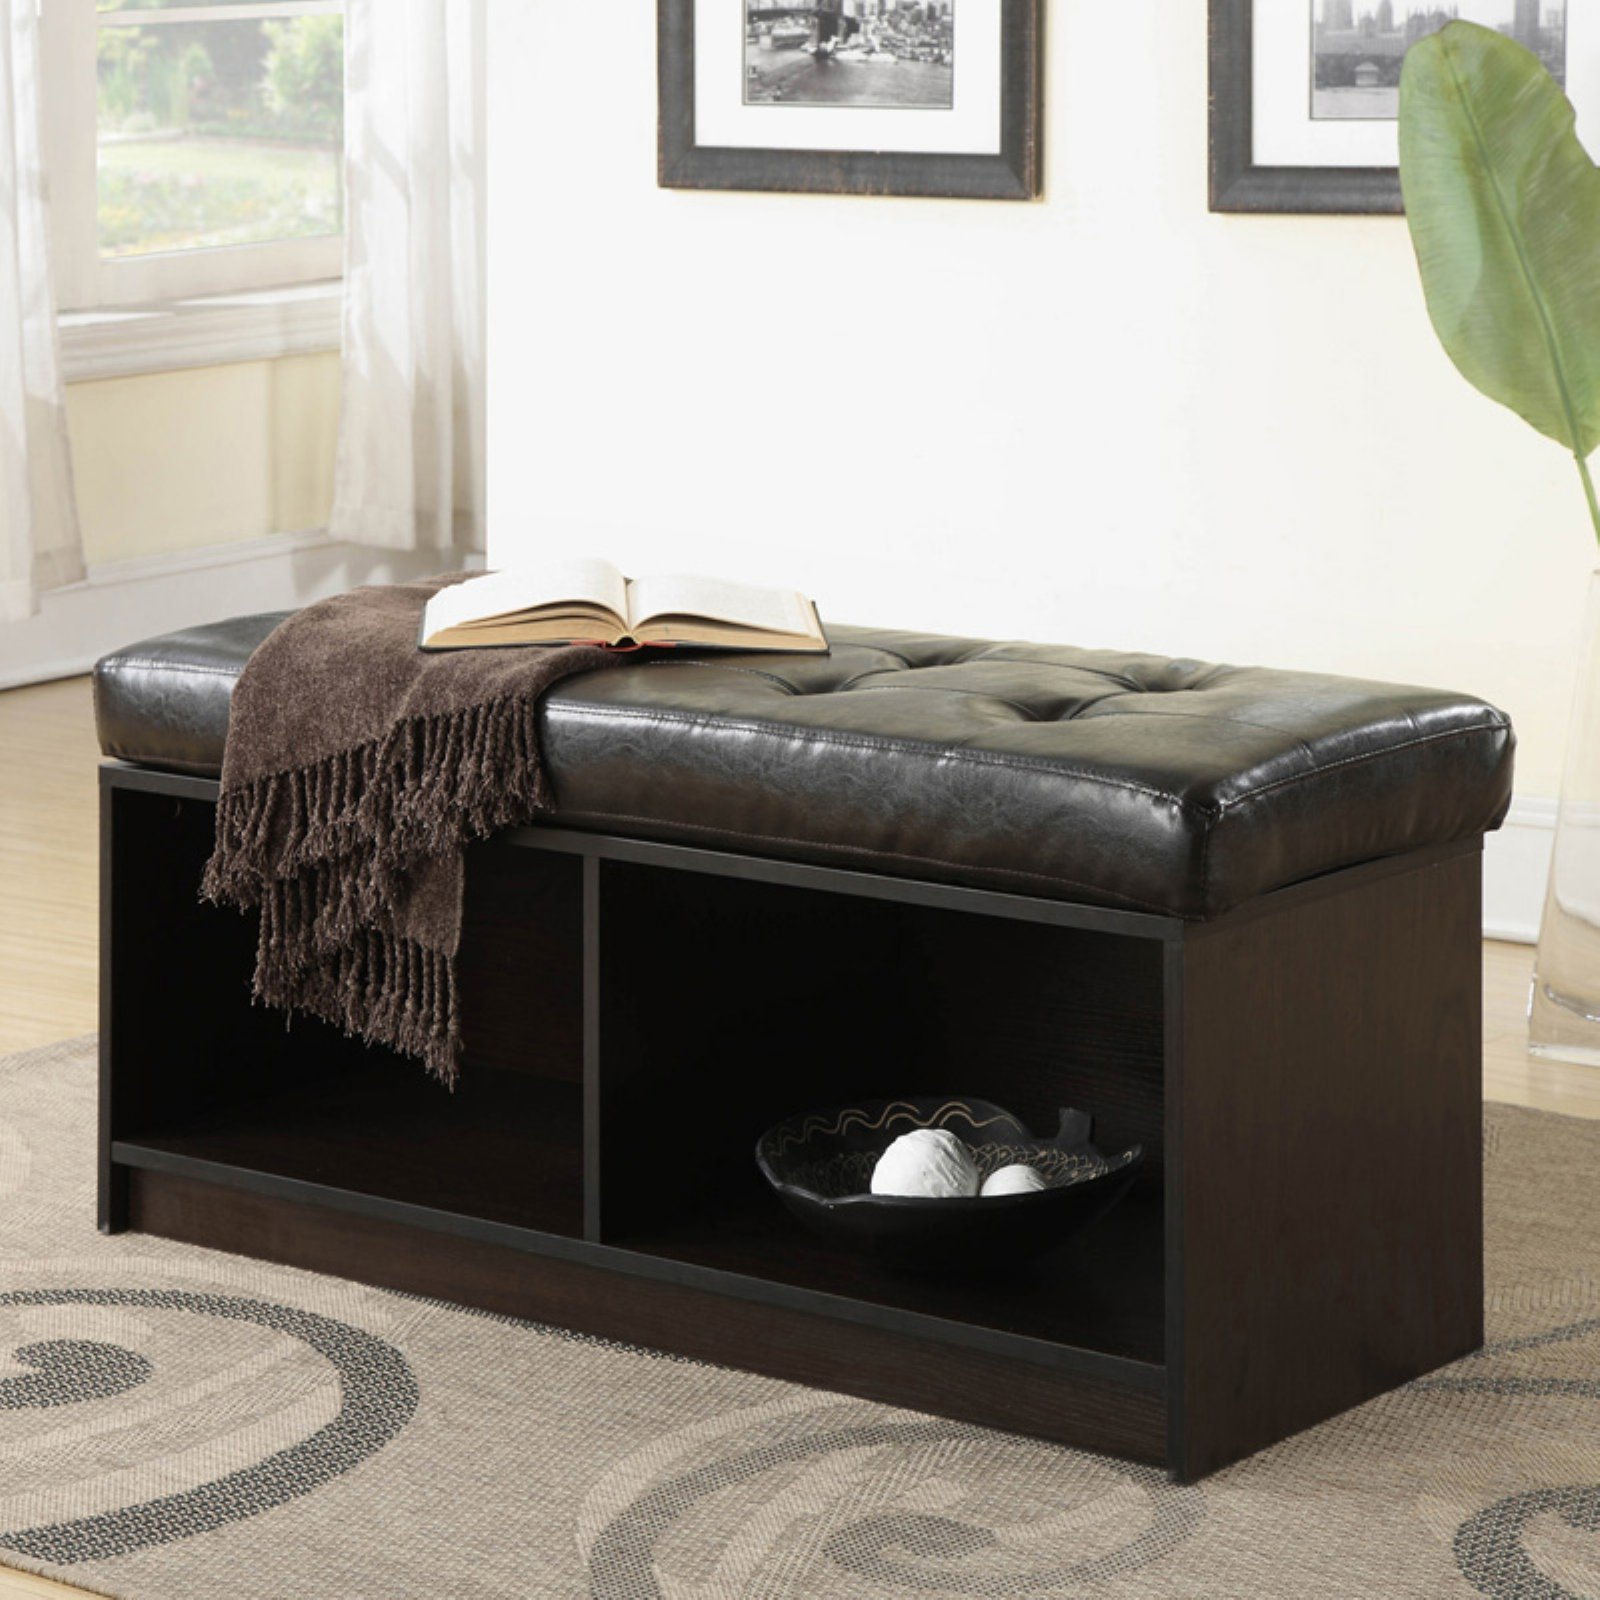 Convenience Concepts Broadmoor Entryway Faux Leather Storage Bench, Multiple Colors